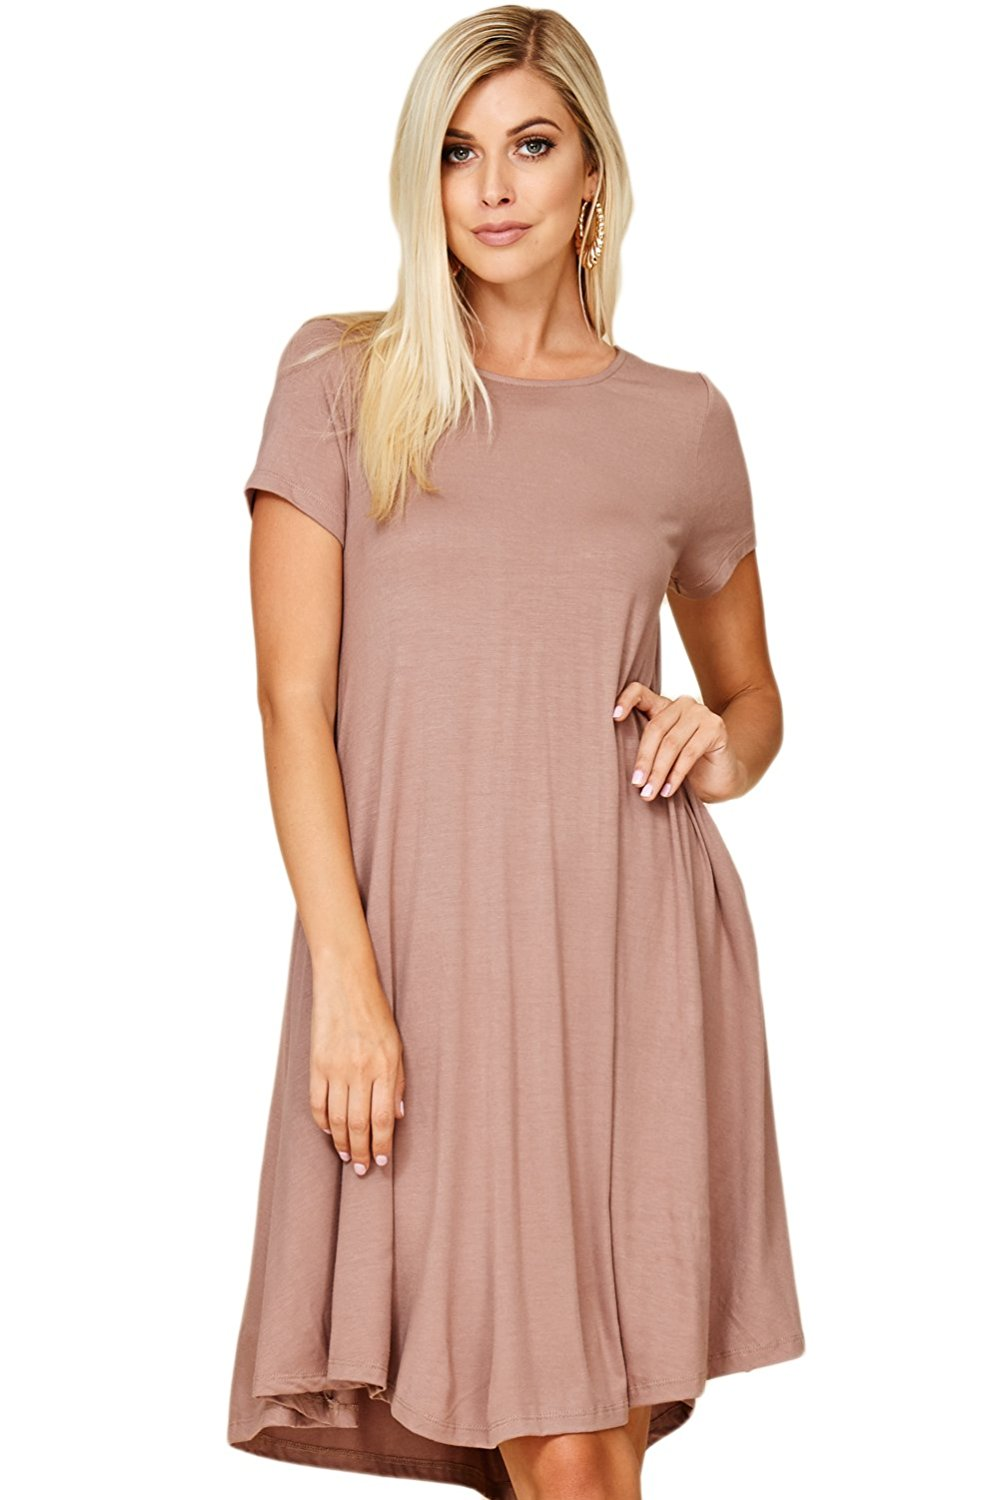 c6c1bb84e8e01c Get Quotations · Annabelle Women's Comfy Short Sleeve Scoop Neck Swing  Dresses With Pockets